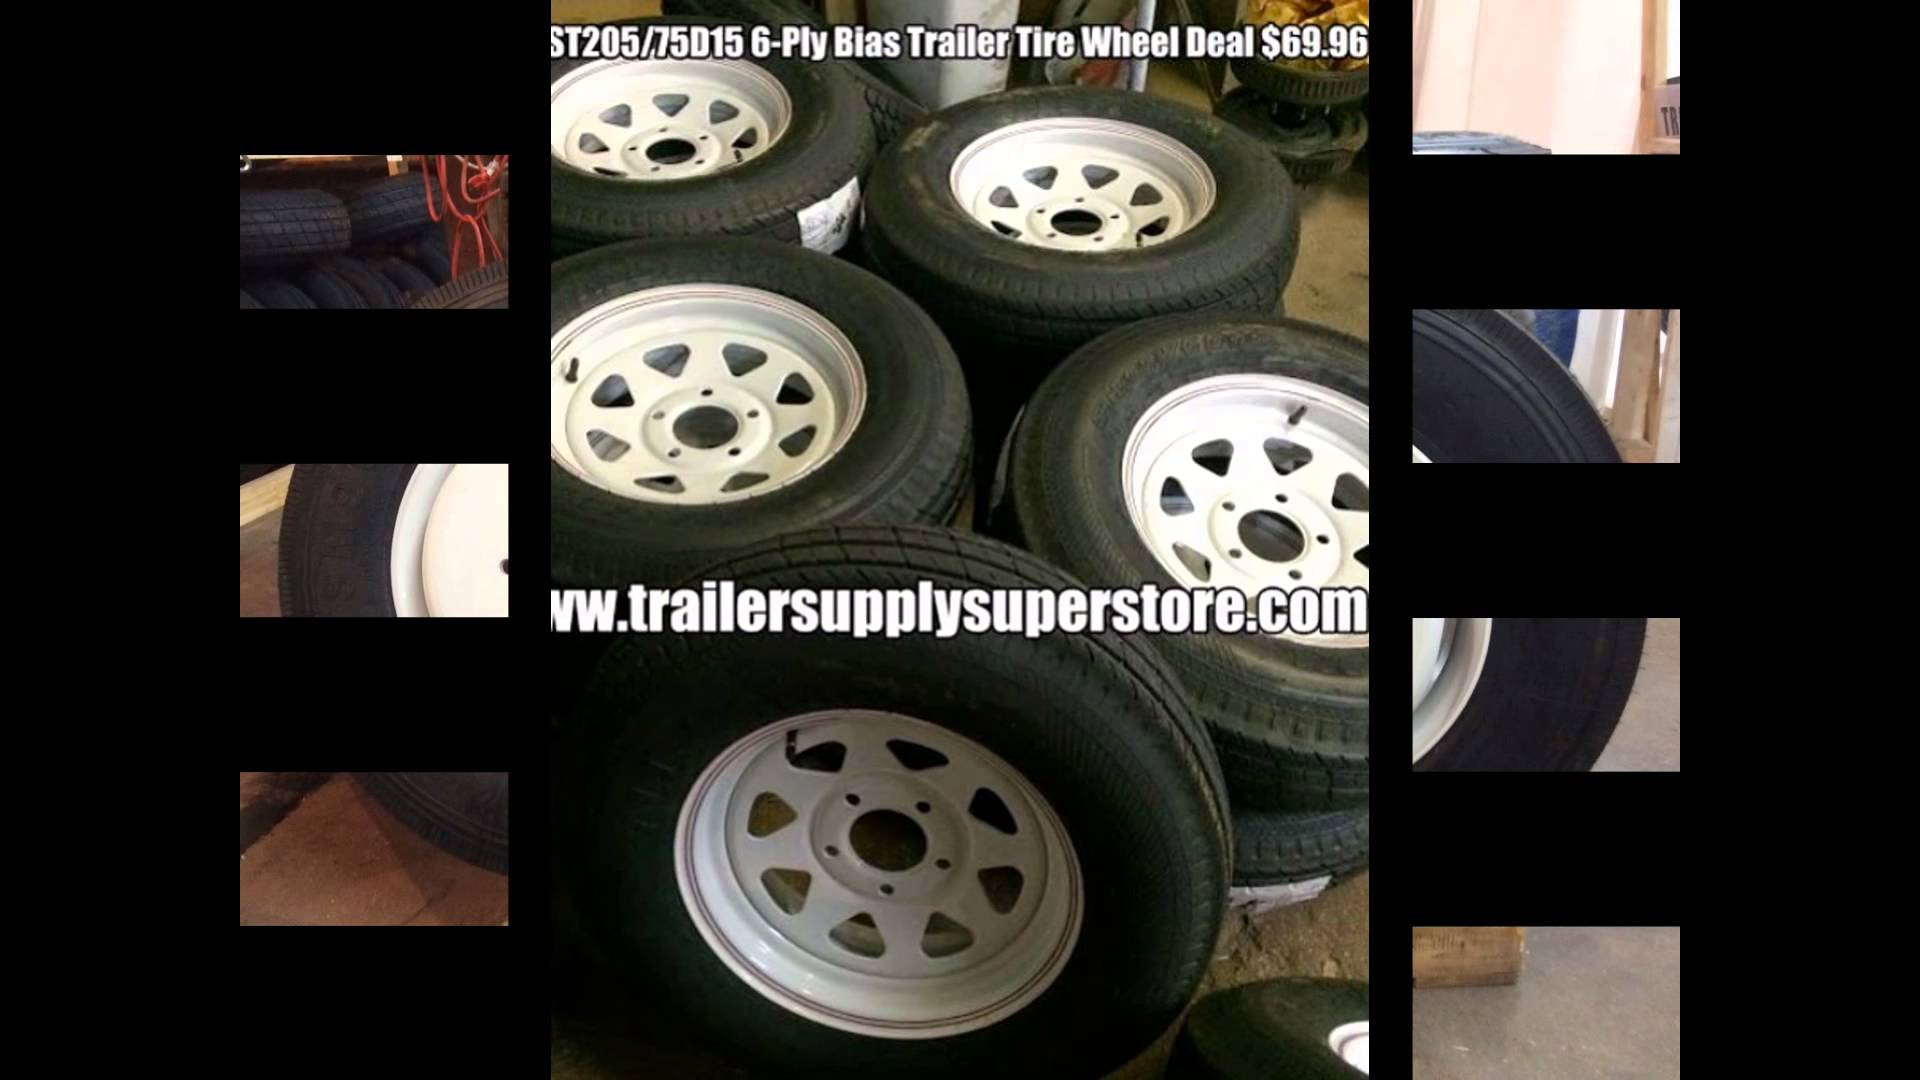 Trailer Parts Unlimited Offers a Wide Variety of Truck and Trailer Tires